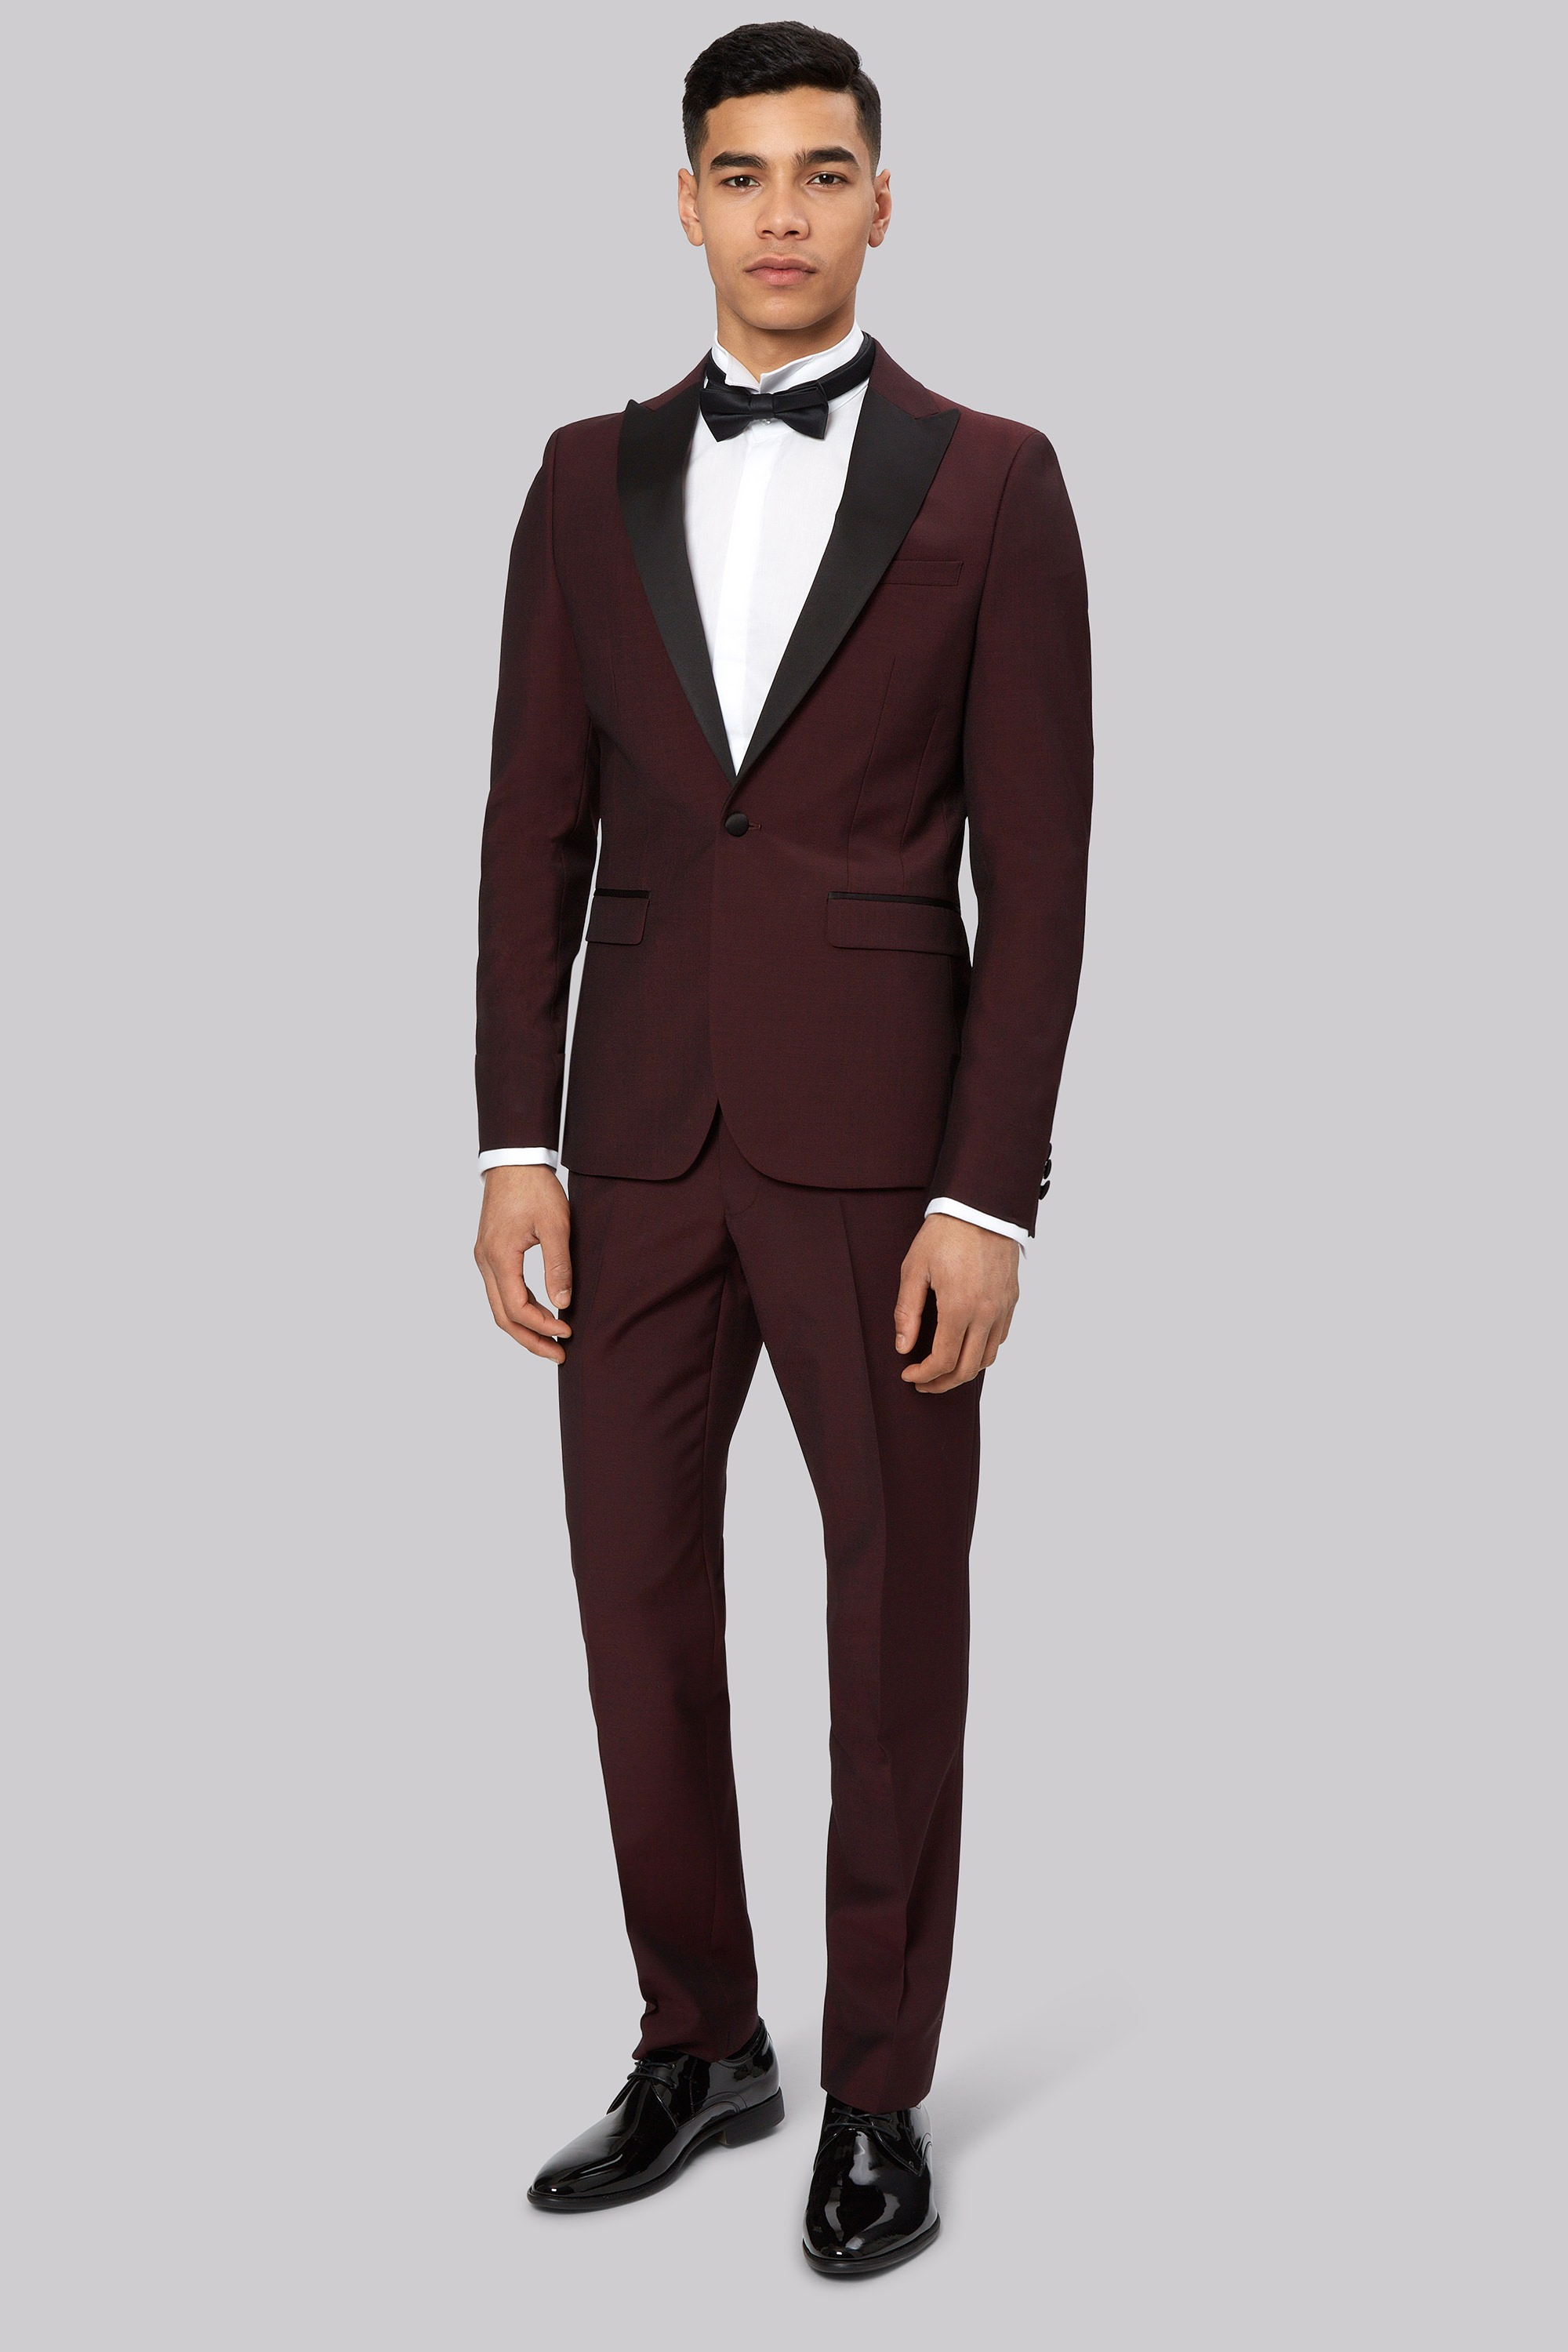 Skinny Suits For Prom - Go Suits